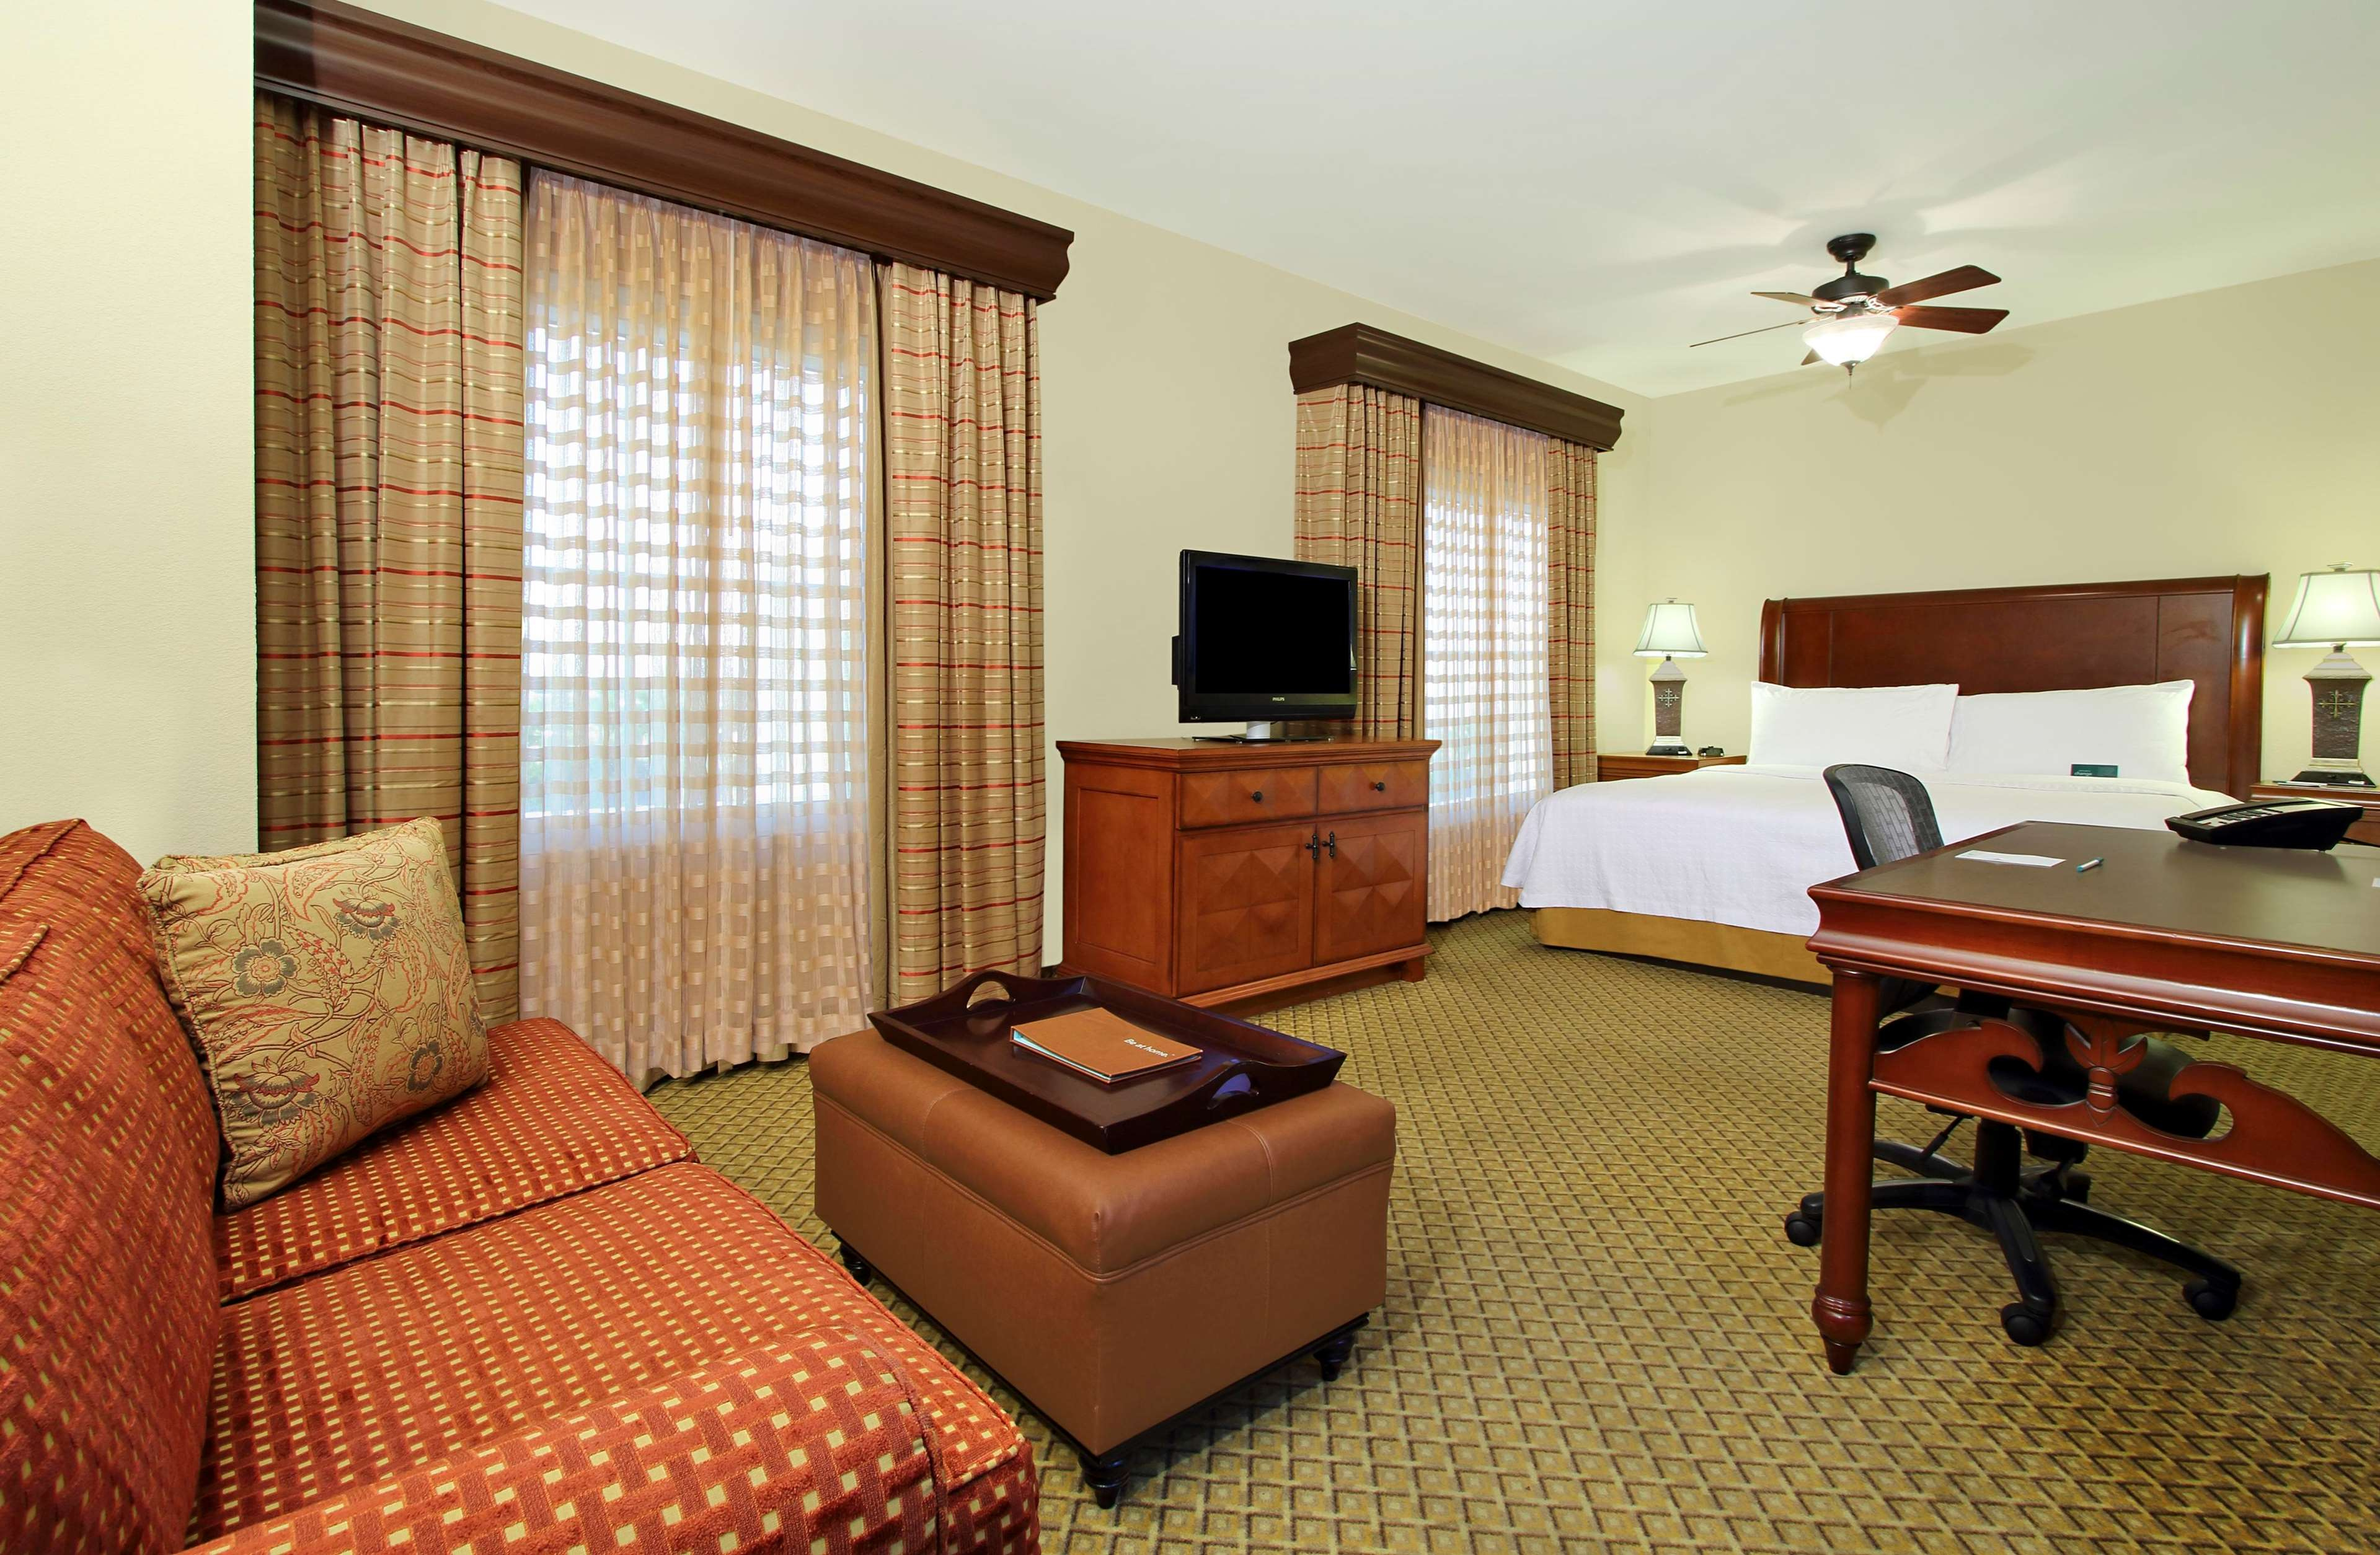 Homewood Suites by Hilton Miami - Airport West image 15